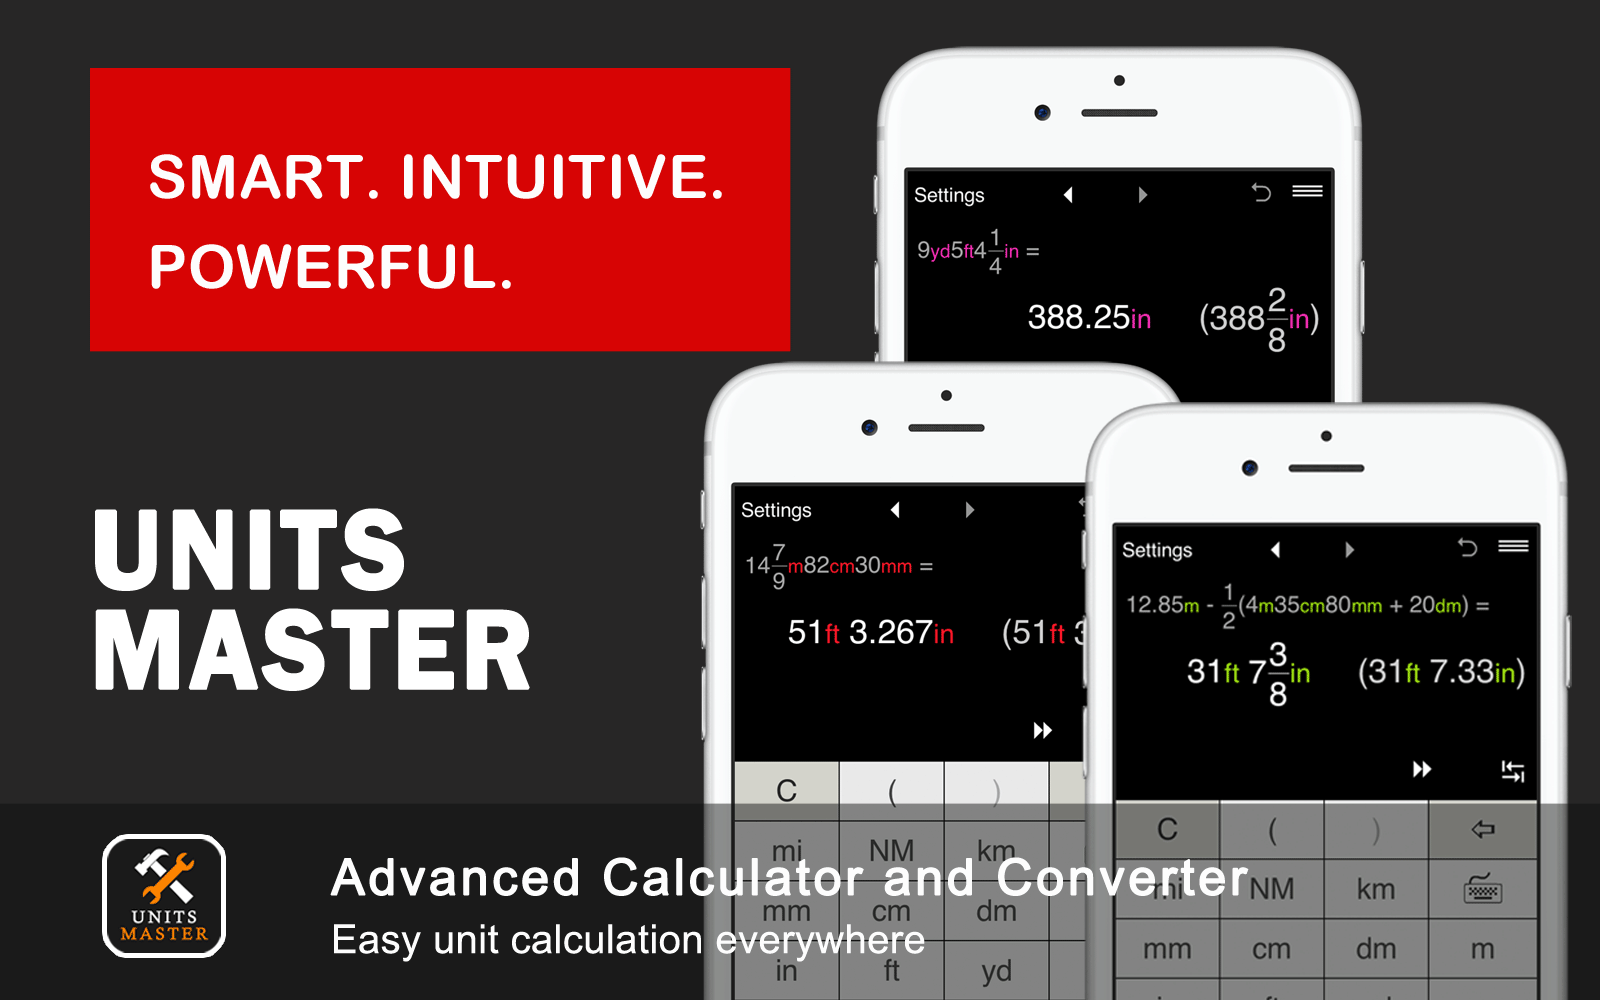 Unit Calculator and Converter for everyday calculations